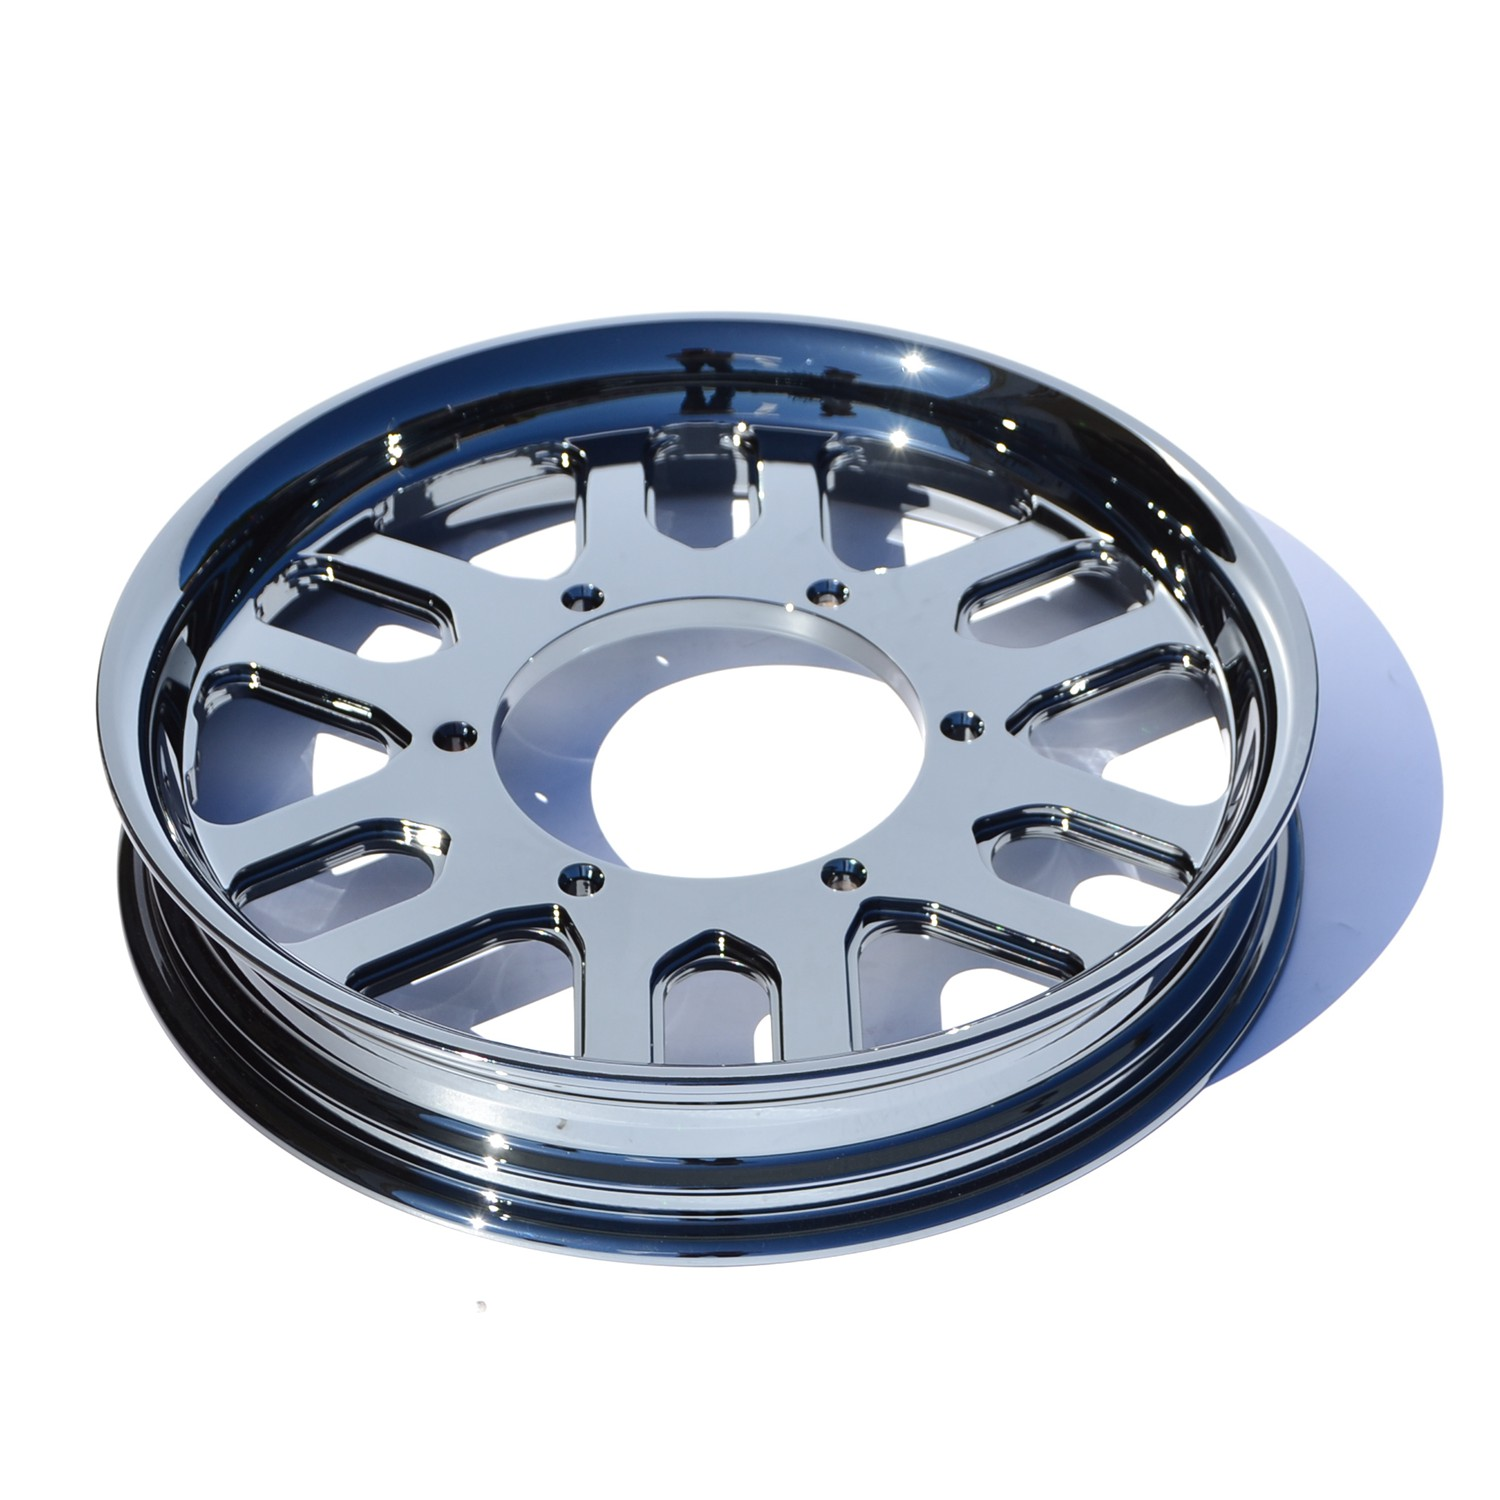 JD037 18x3.0 Forged Motorcycel Wheel 03